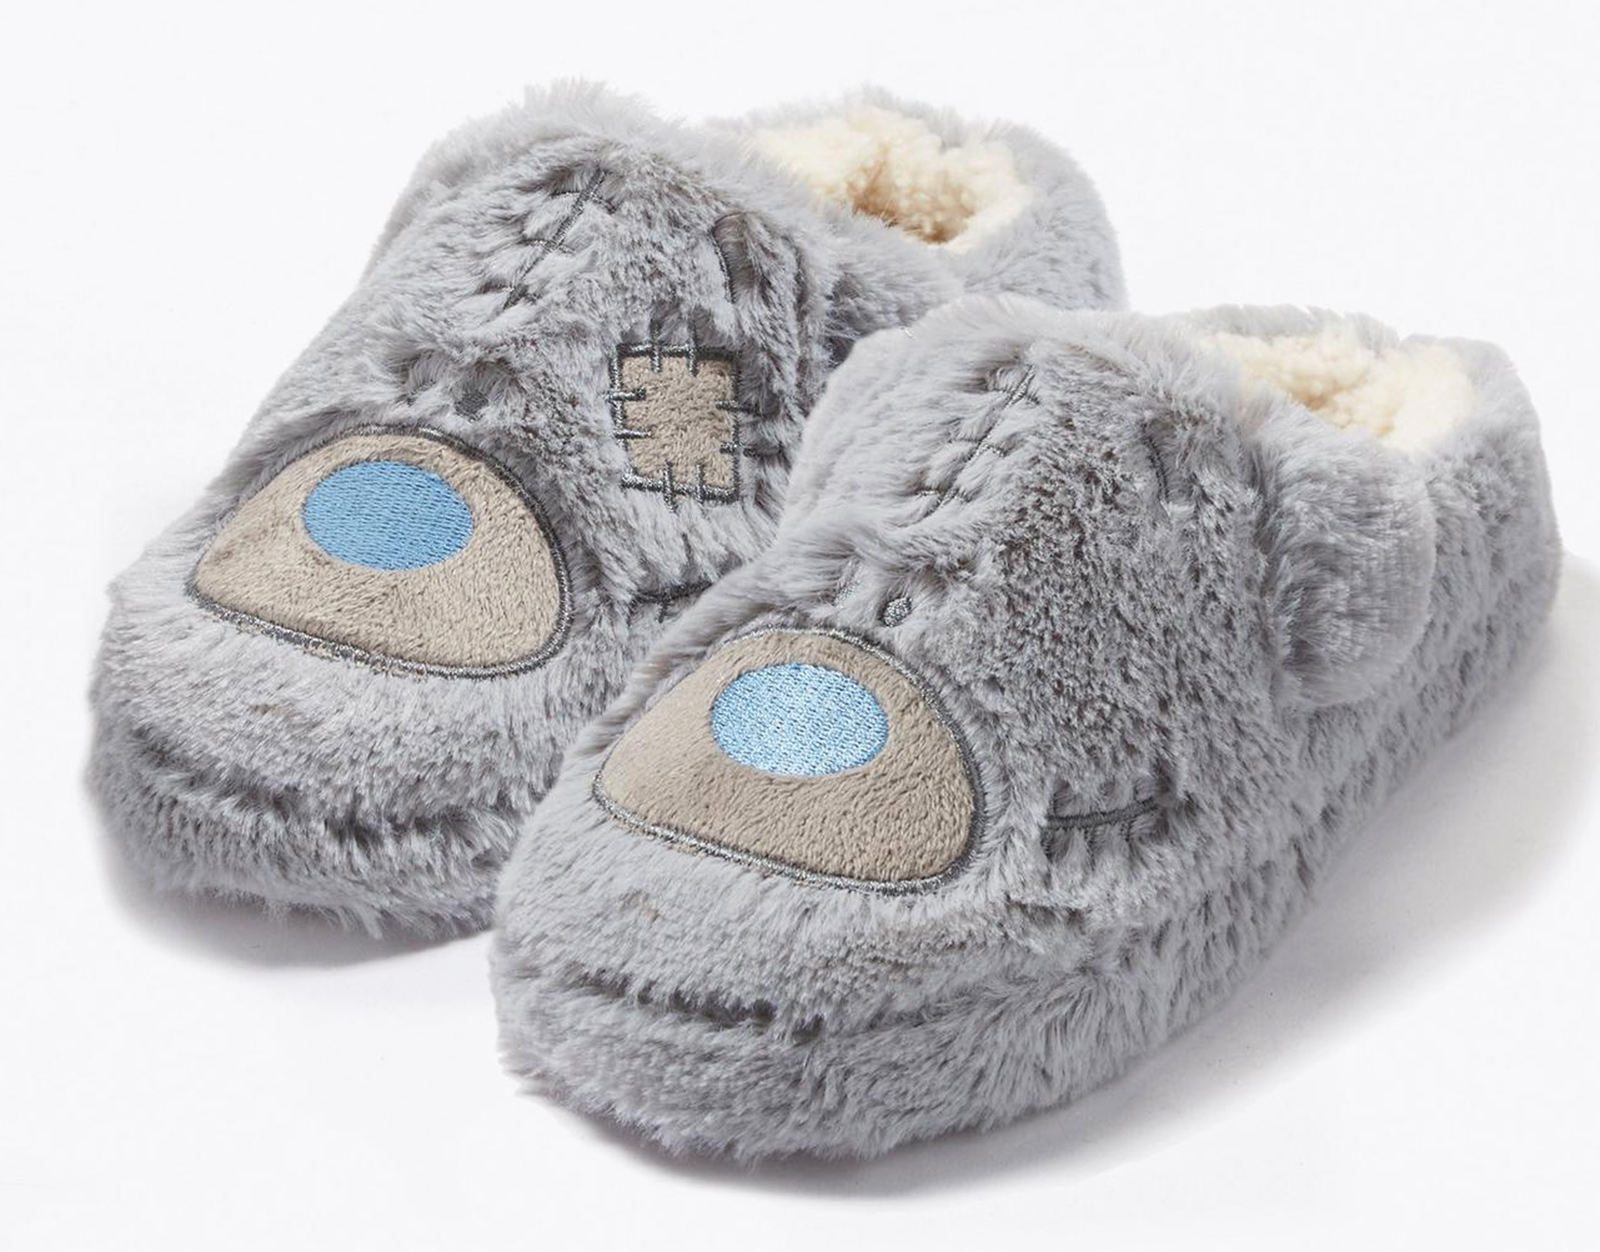 LADIES-FLUFFY-ME-TO-YOU-TATTY-TEDDY-SLIPPERS-NOVELTY-XMAS-GIFT-WARM-MULES-UK-3-8 thumbnail 6